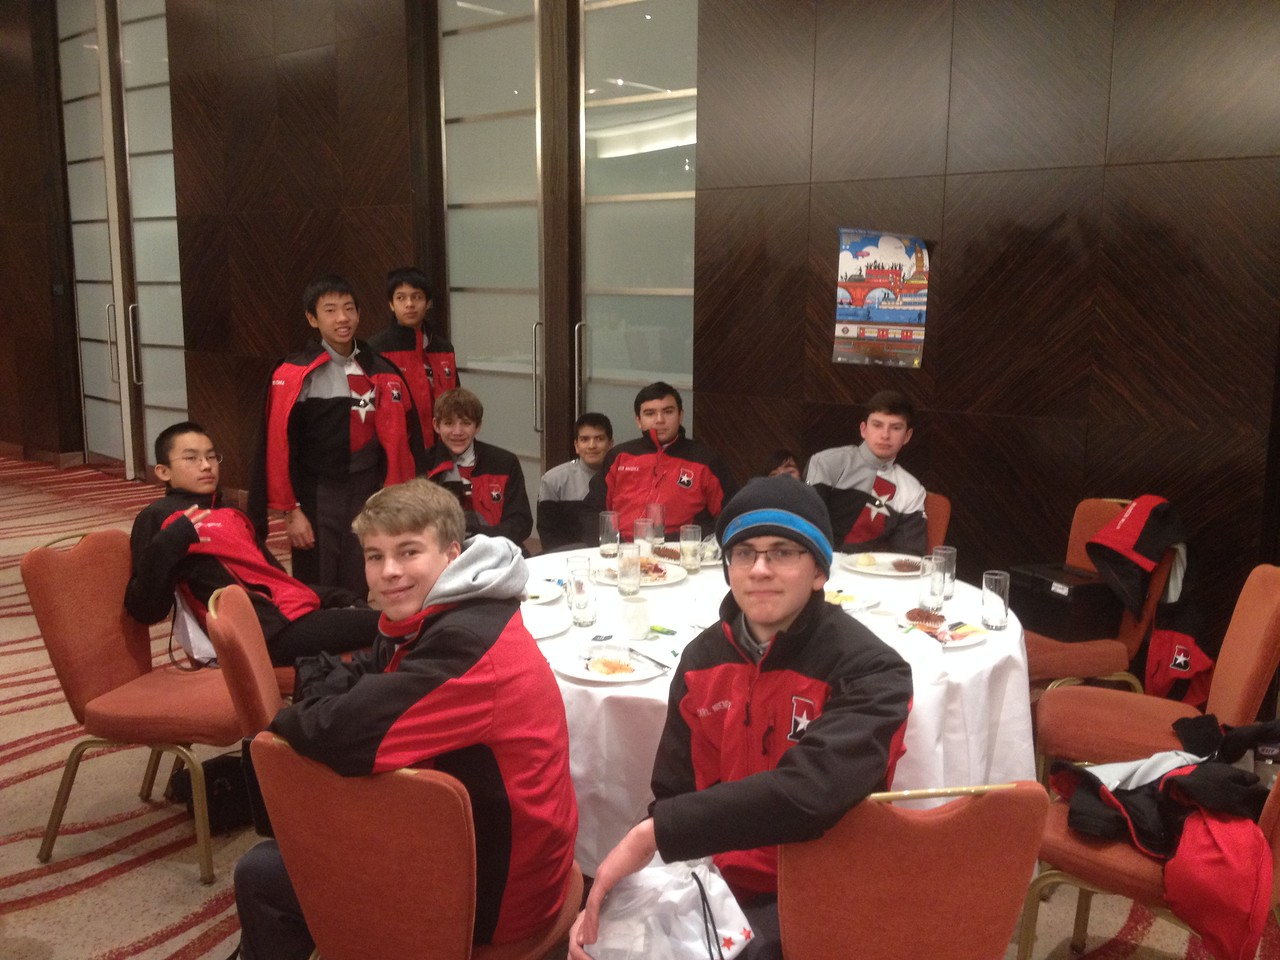 Group 9 at breakfast